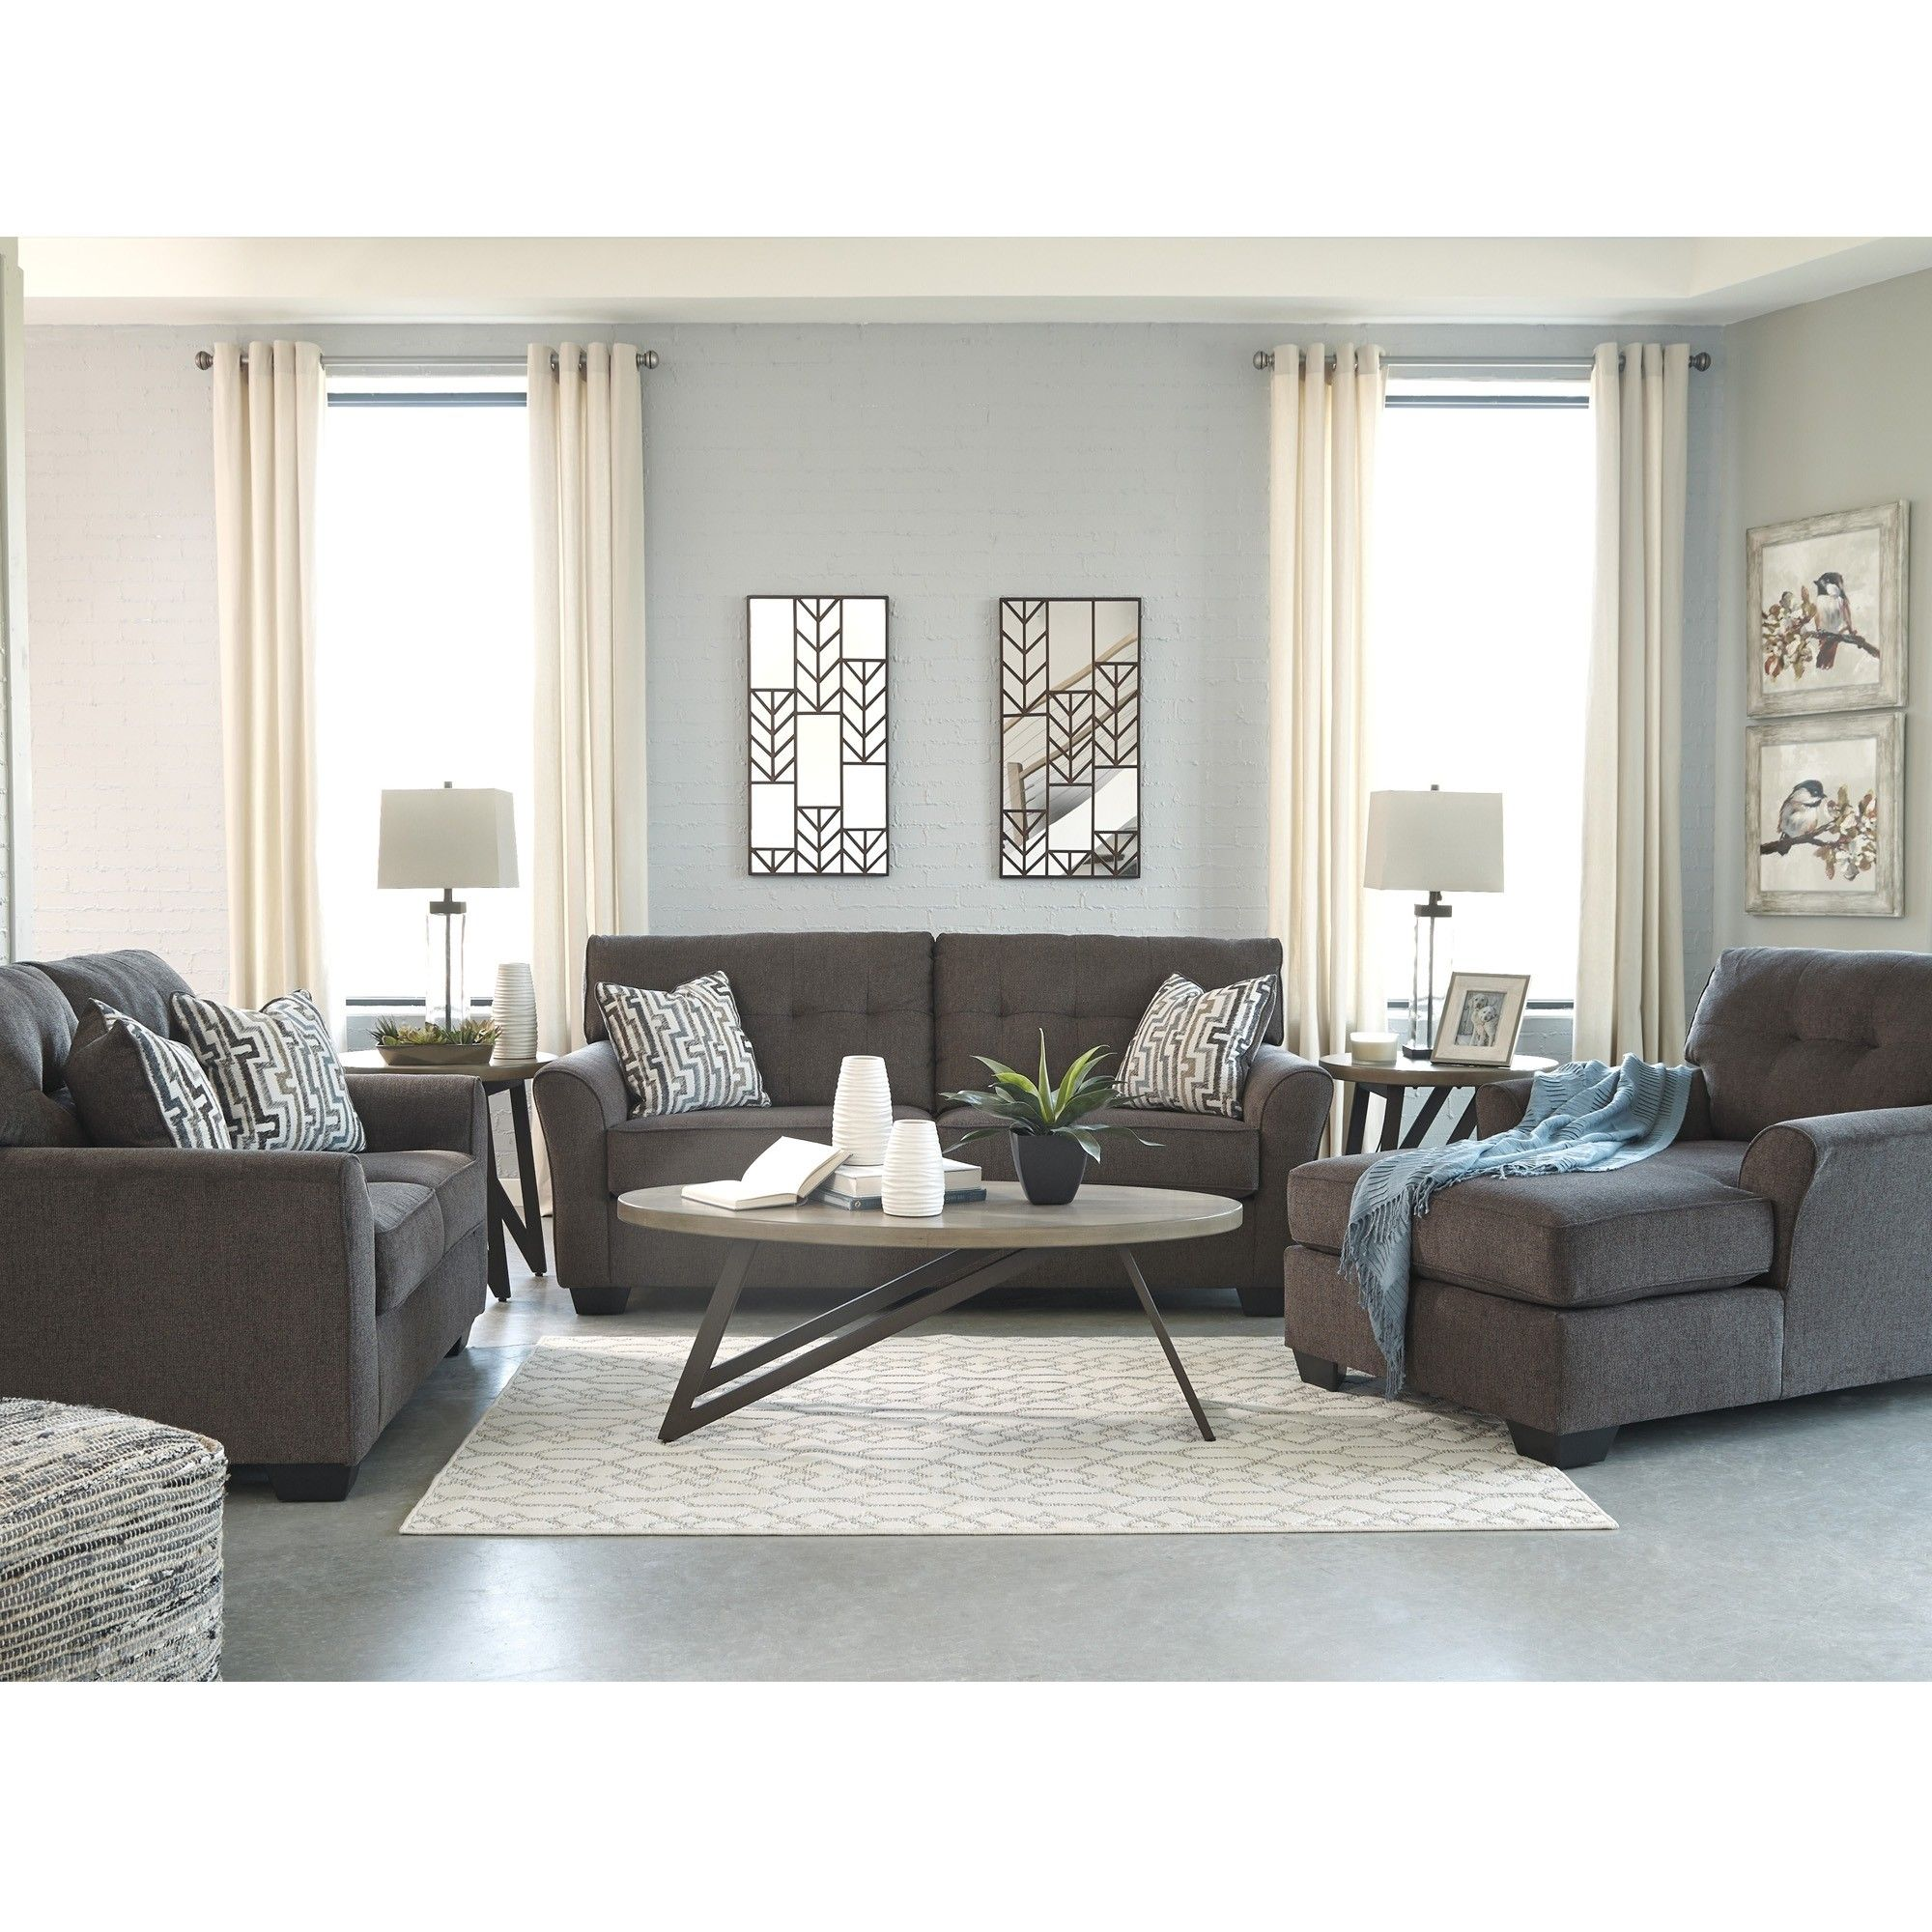 Ashley Furniture Sofa Tepperman S With Images Ashley